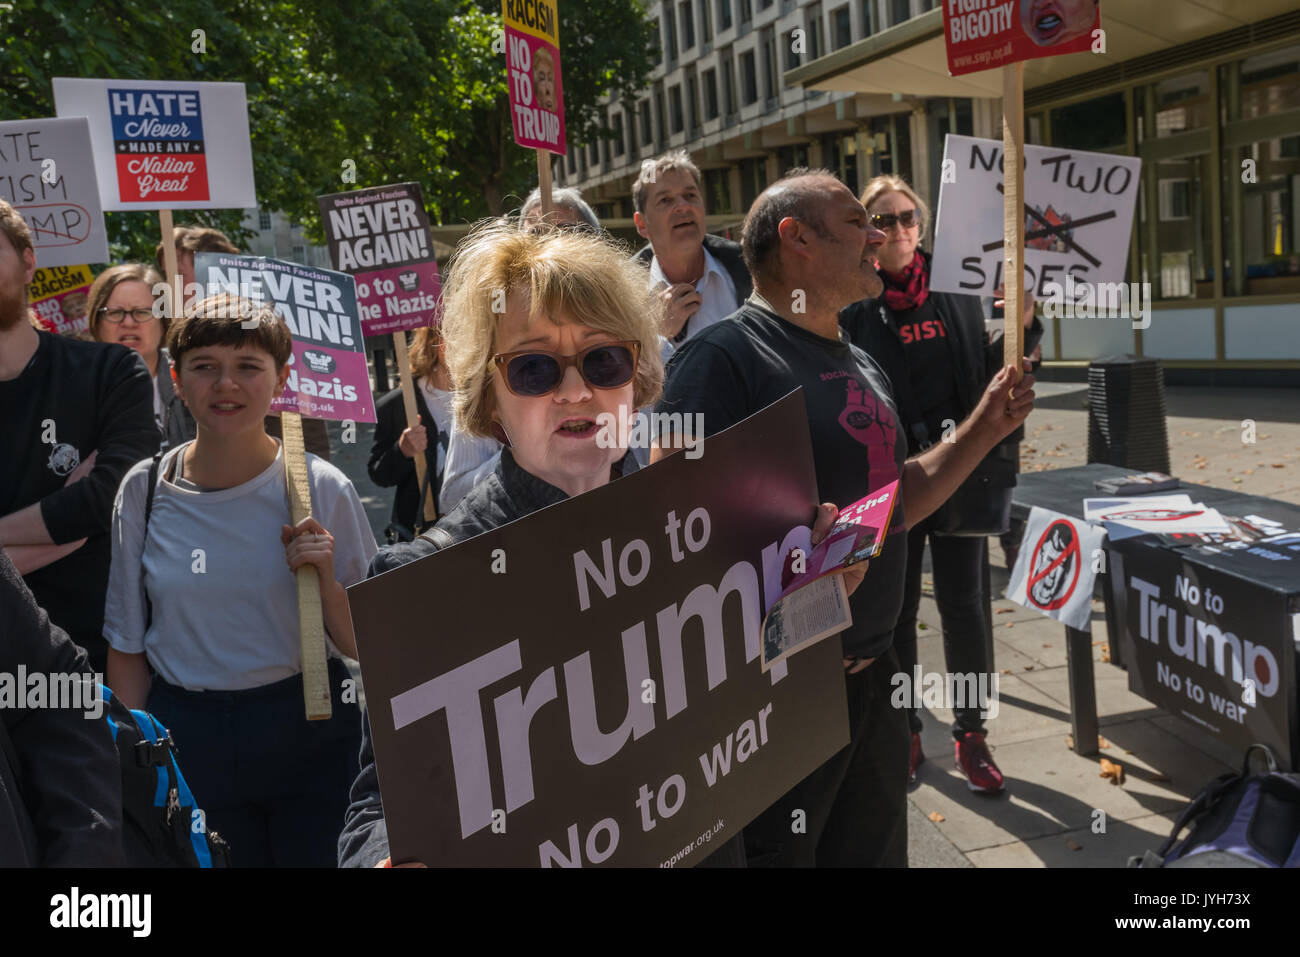 London, UK. 19th Aug, 2017. People at the Stand Up to Trump protest outside the US Embassy. The organisation is supported by around 20 organisations including the CWU, NUT, Unite, UCU, CND, Stop the War, Campaign Against Climate Change, Muslim Association of Britain and others. is suppor - Stock Image